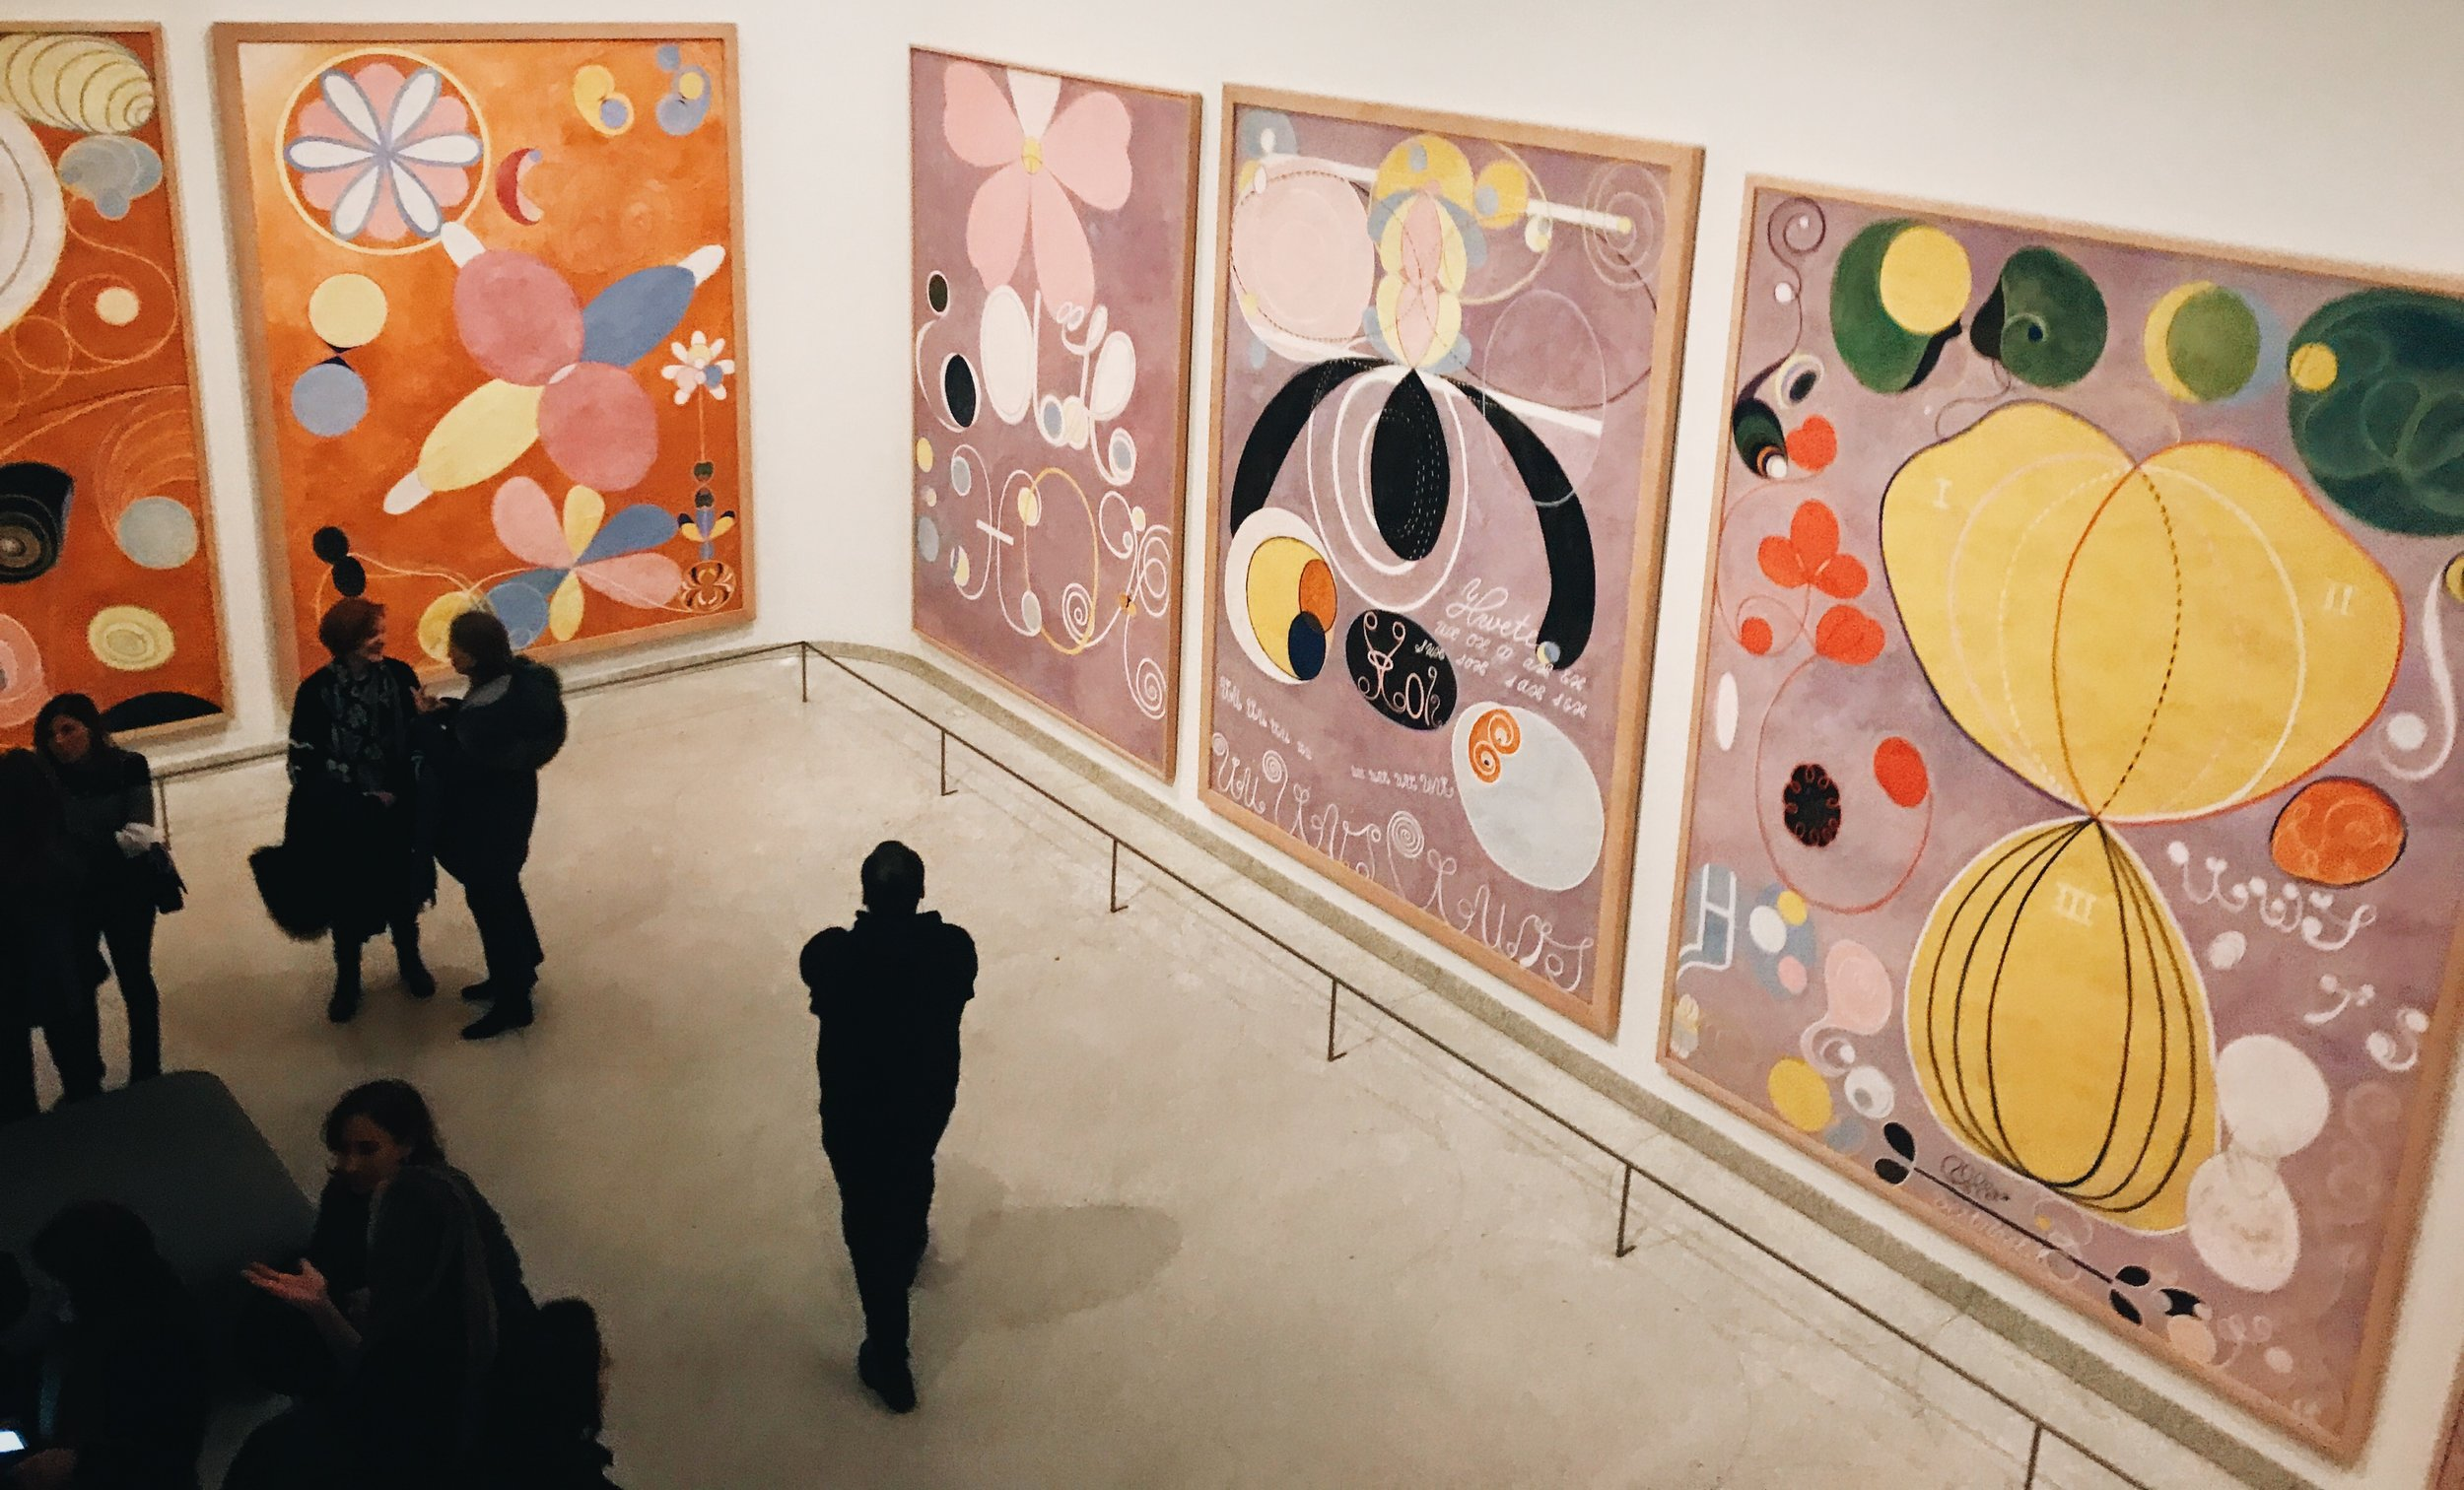 Group IV, The Ten Largest, No. 7, Adulthood by Hilma af Klint I saw at the Guggenheim